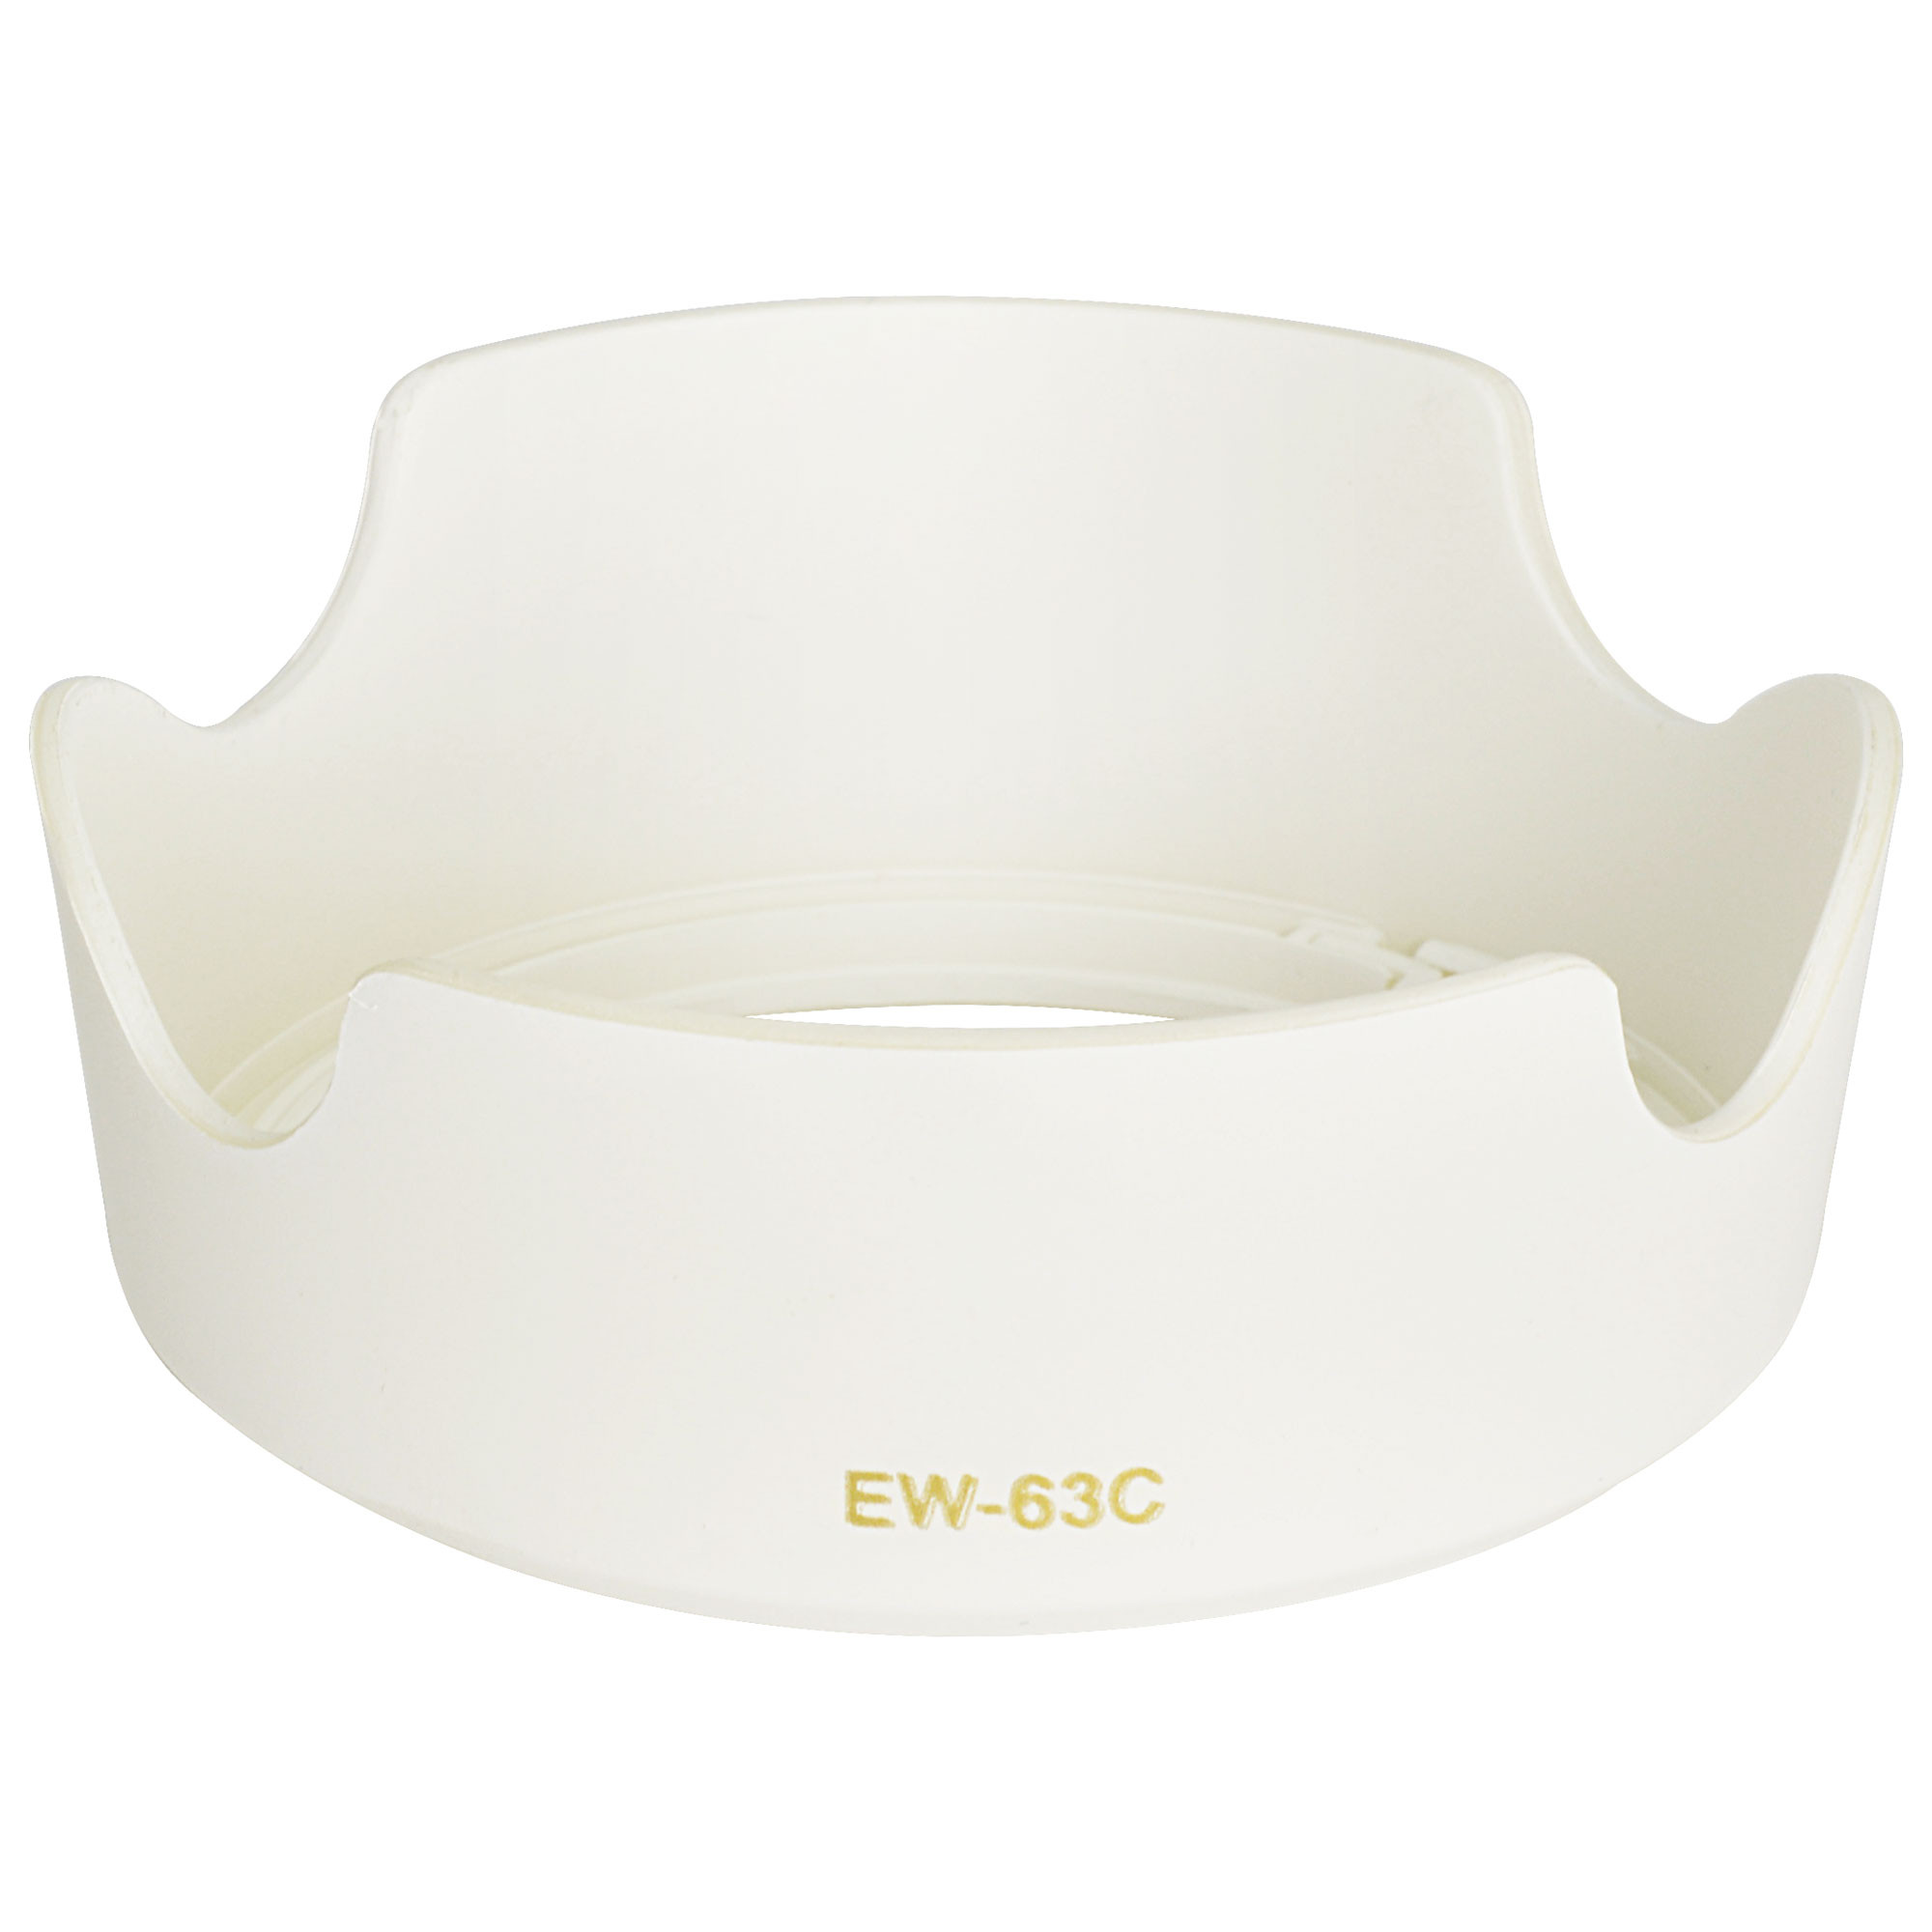 MENGS® EW-63C Lens Hood for Canon EF-S 18-55mm f/3.5-5.6 IS STM - White